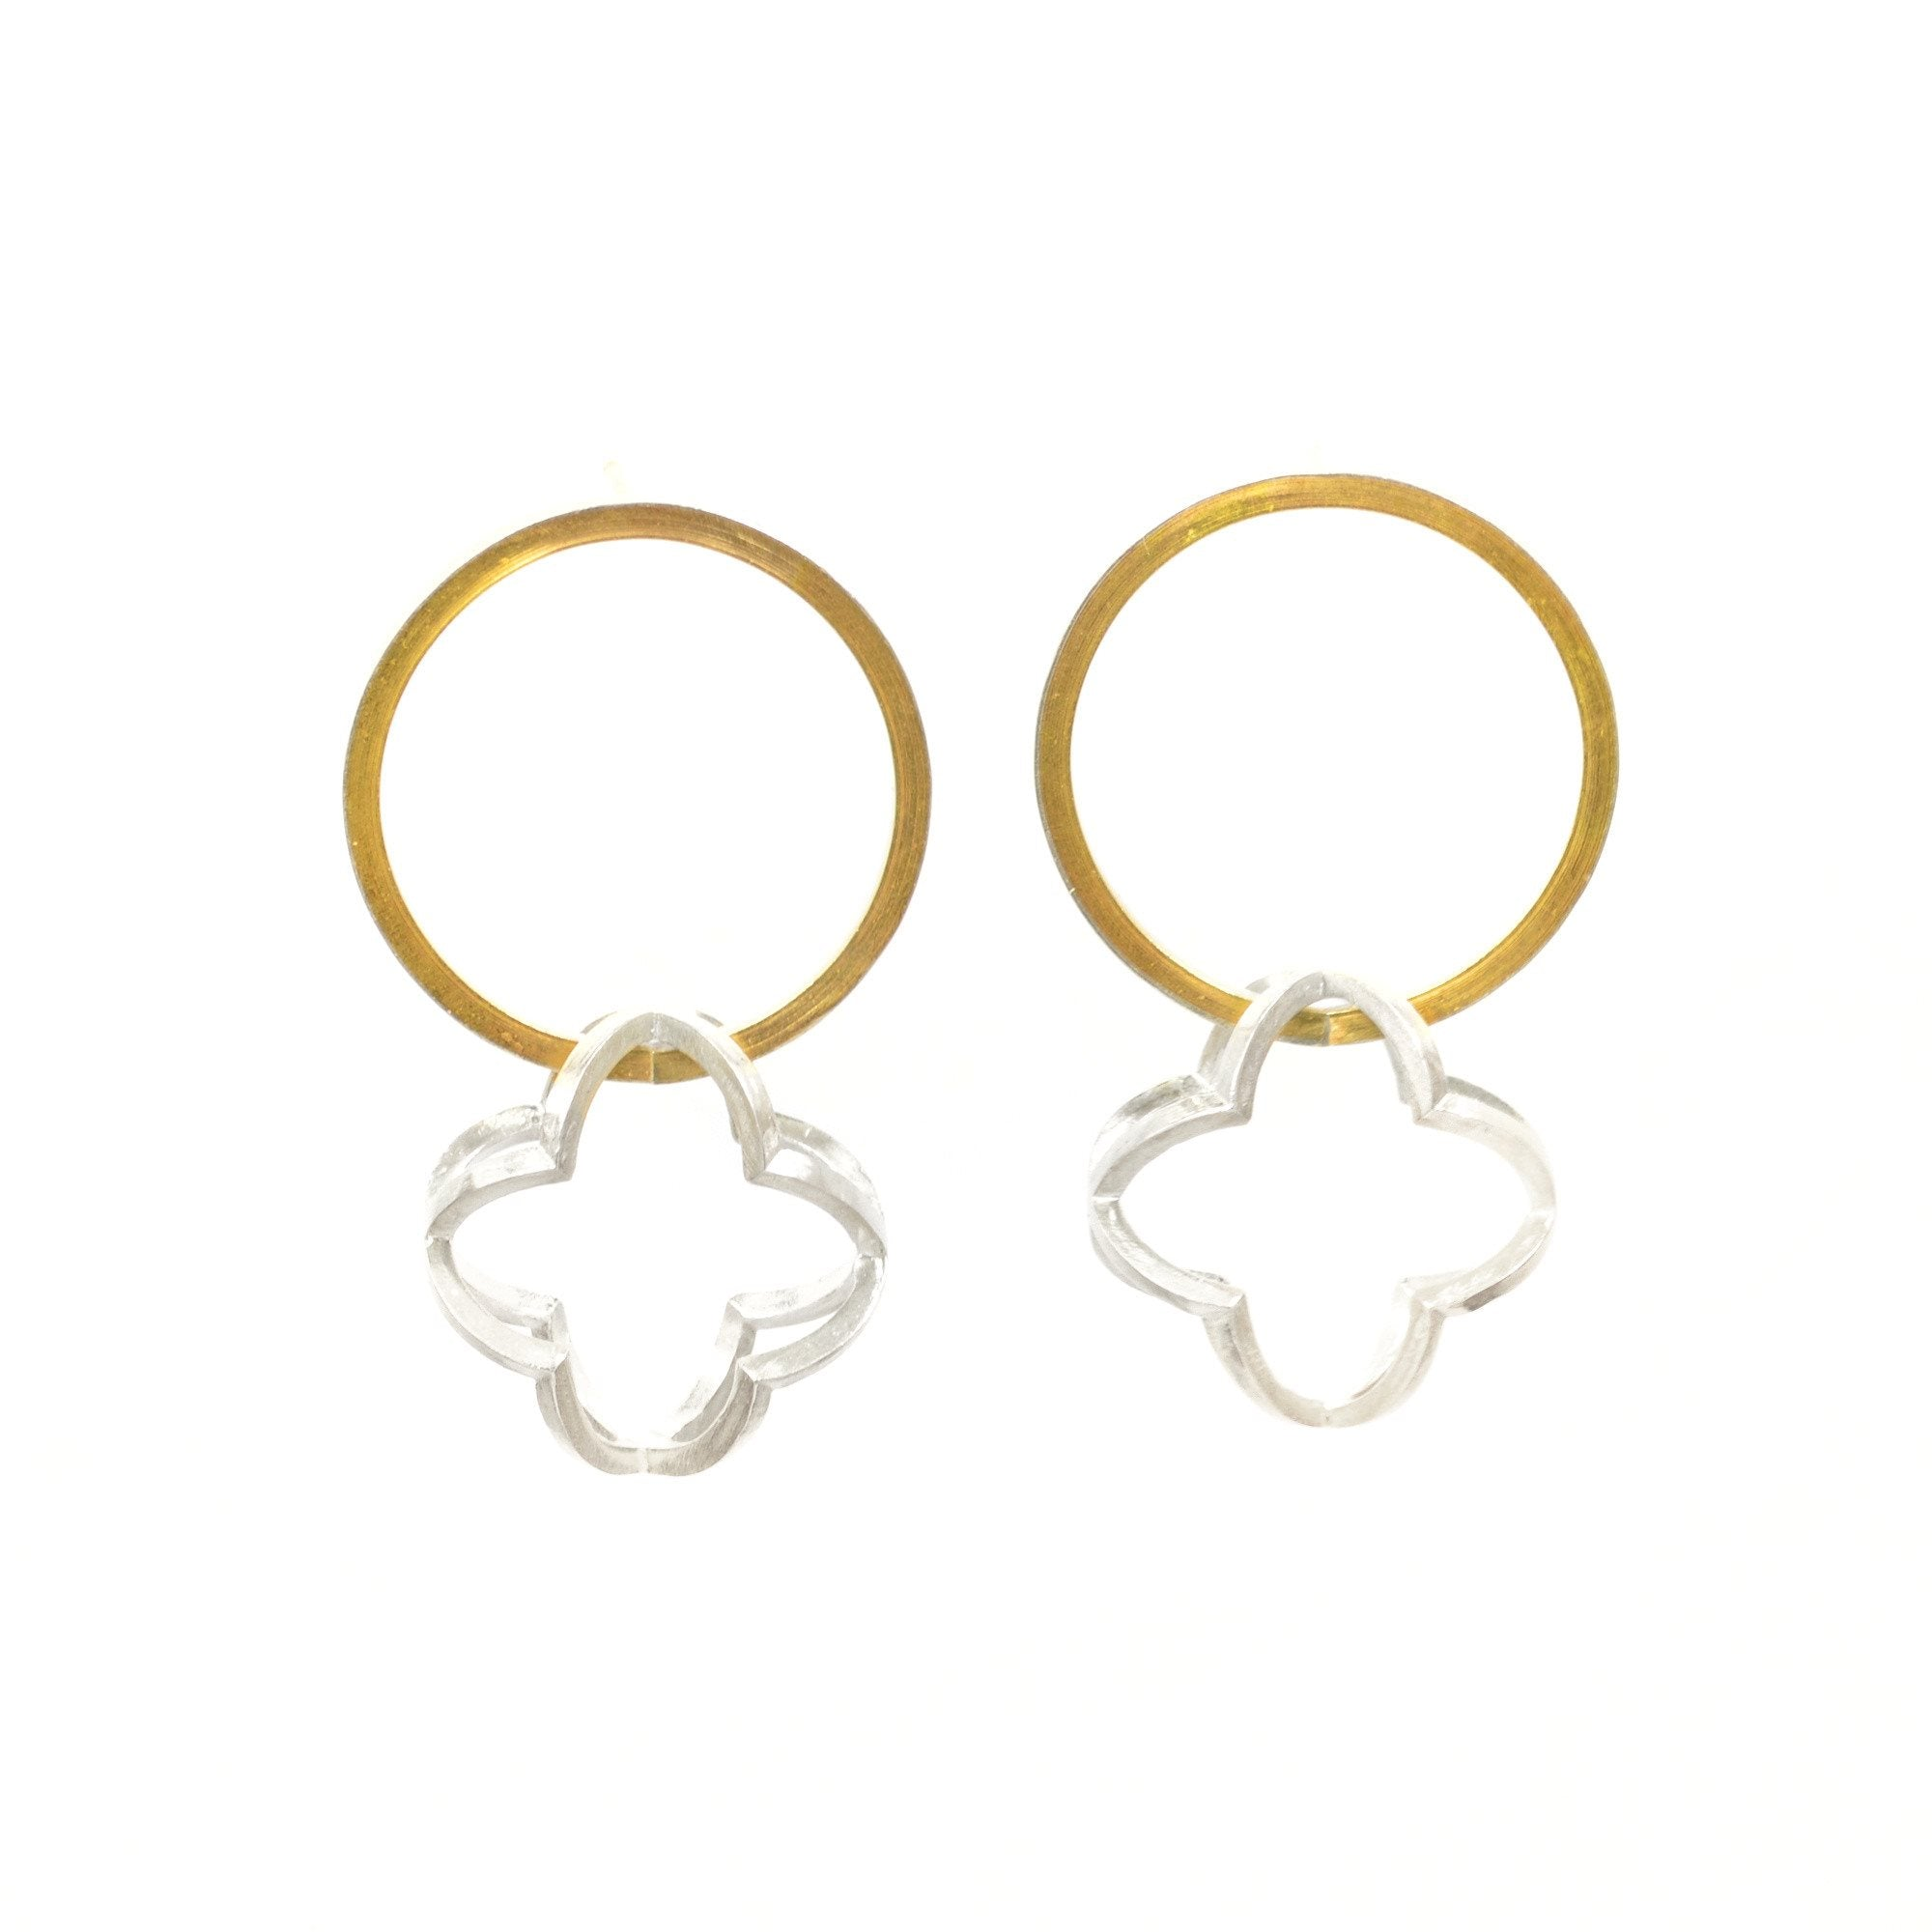 Quatrefoil Orbit Hoop Earrings in 22k gold and sterling silver